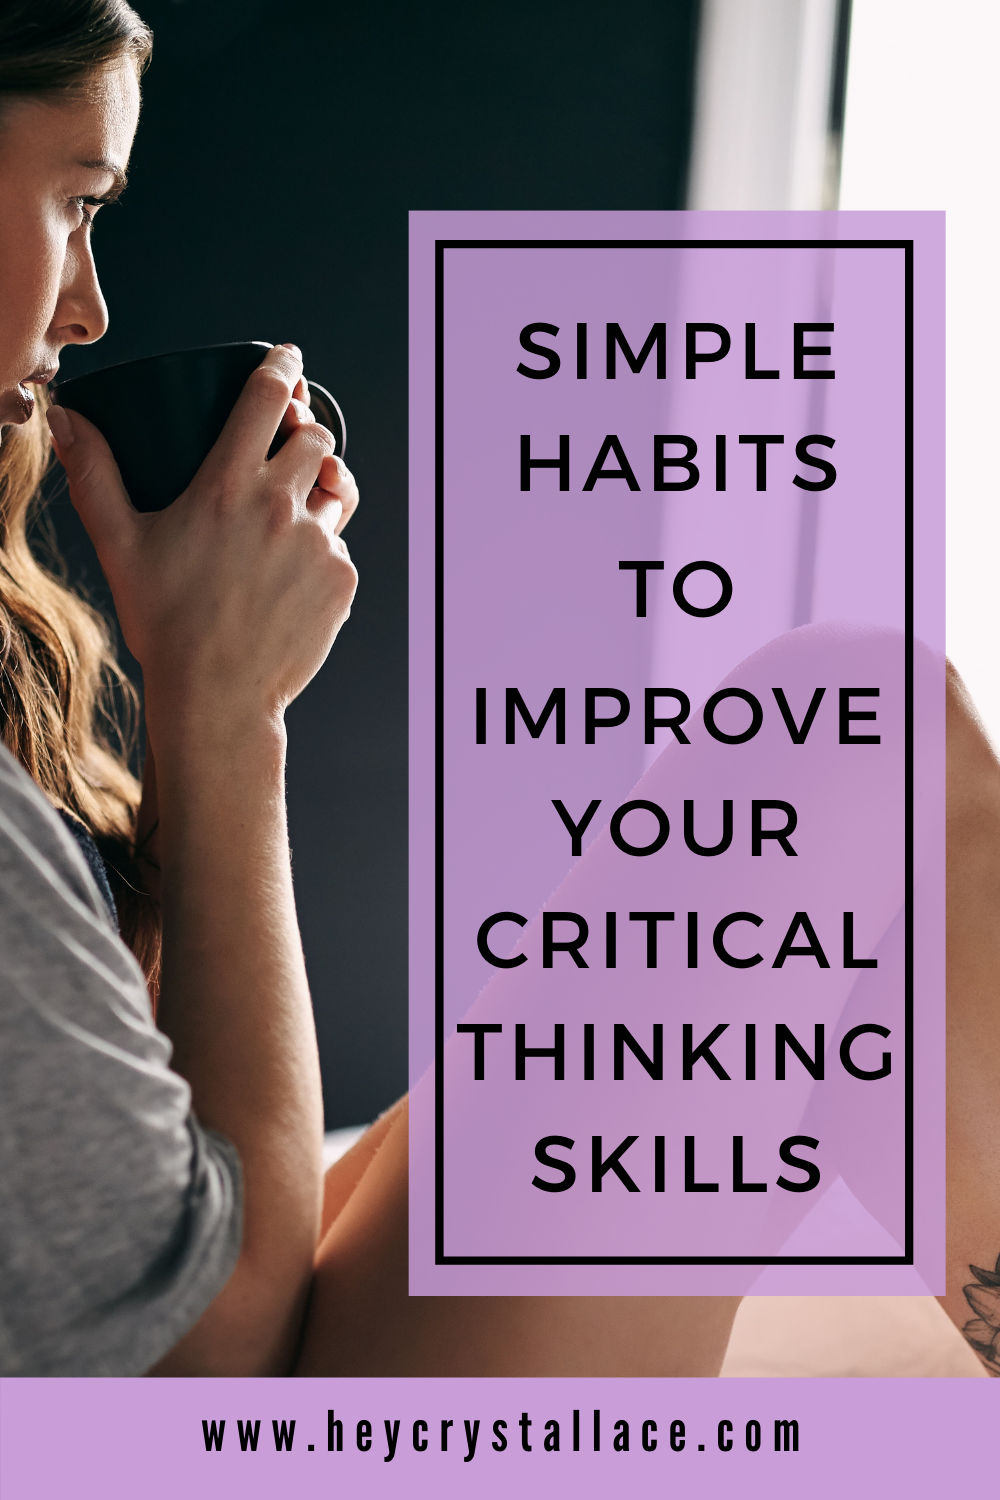 How to Improve Critical Thinking Skills…5 Things You Can Start Working On Now